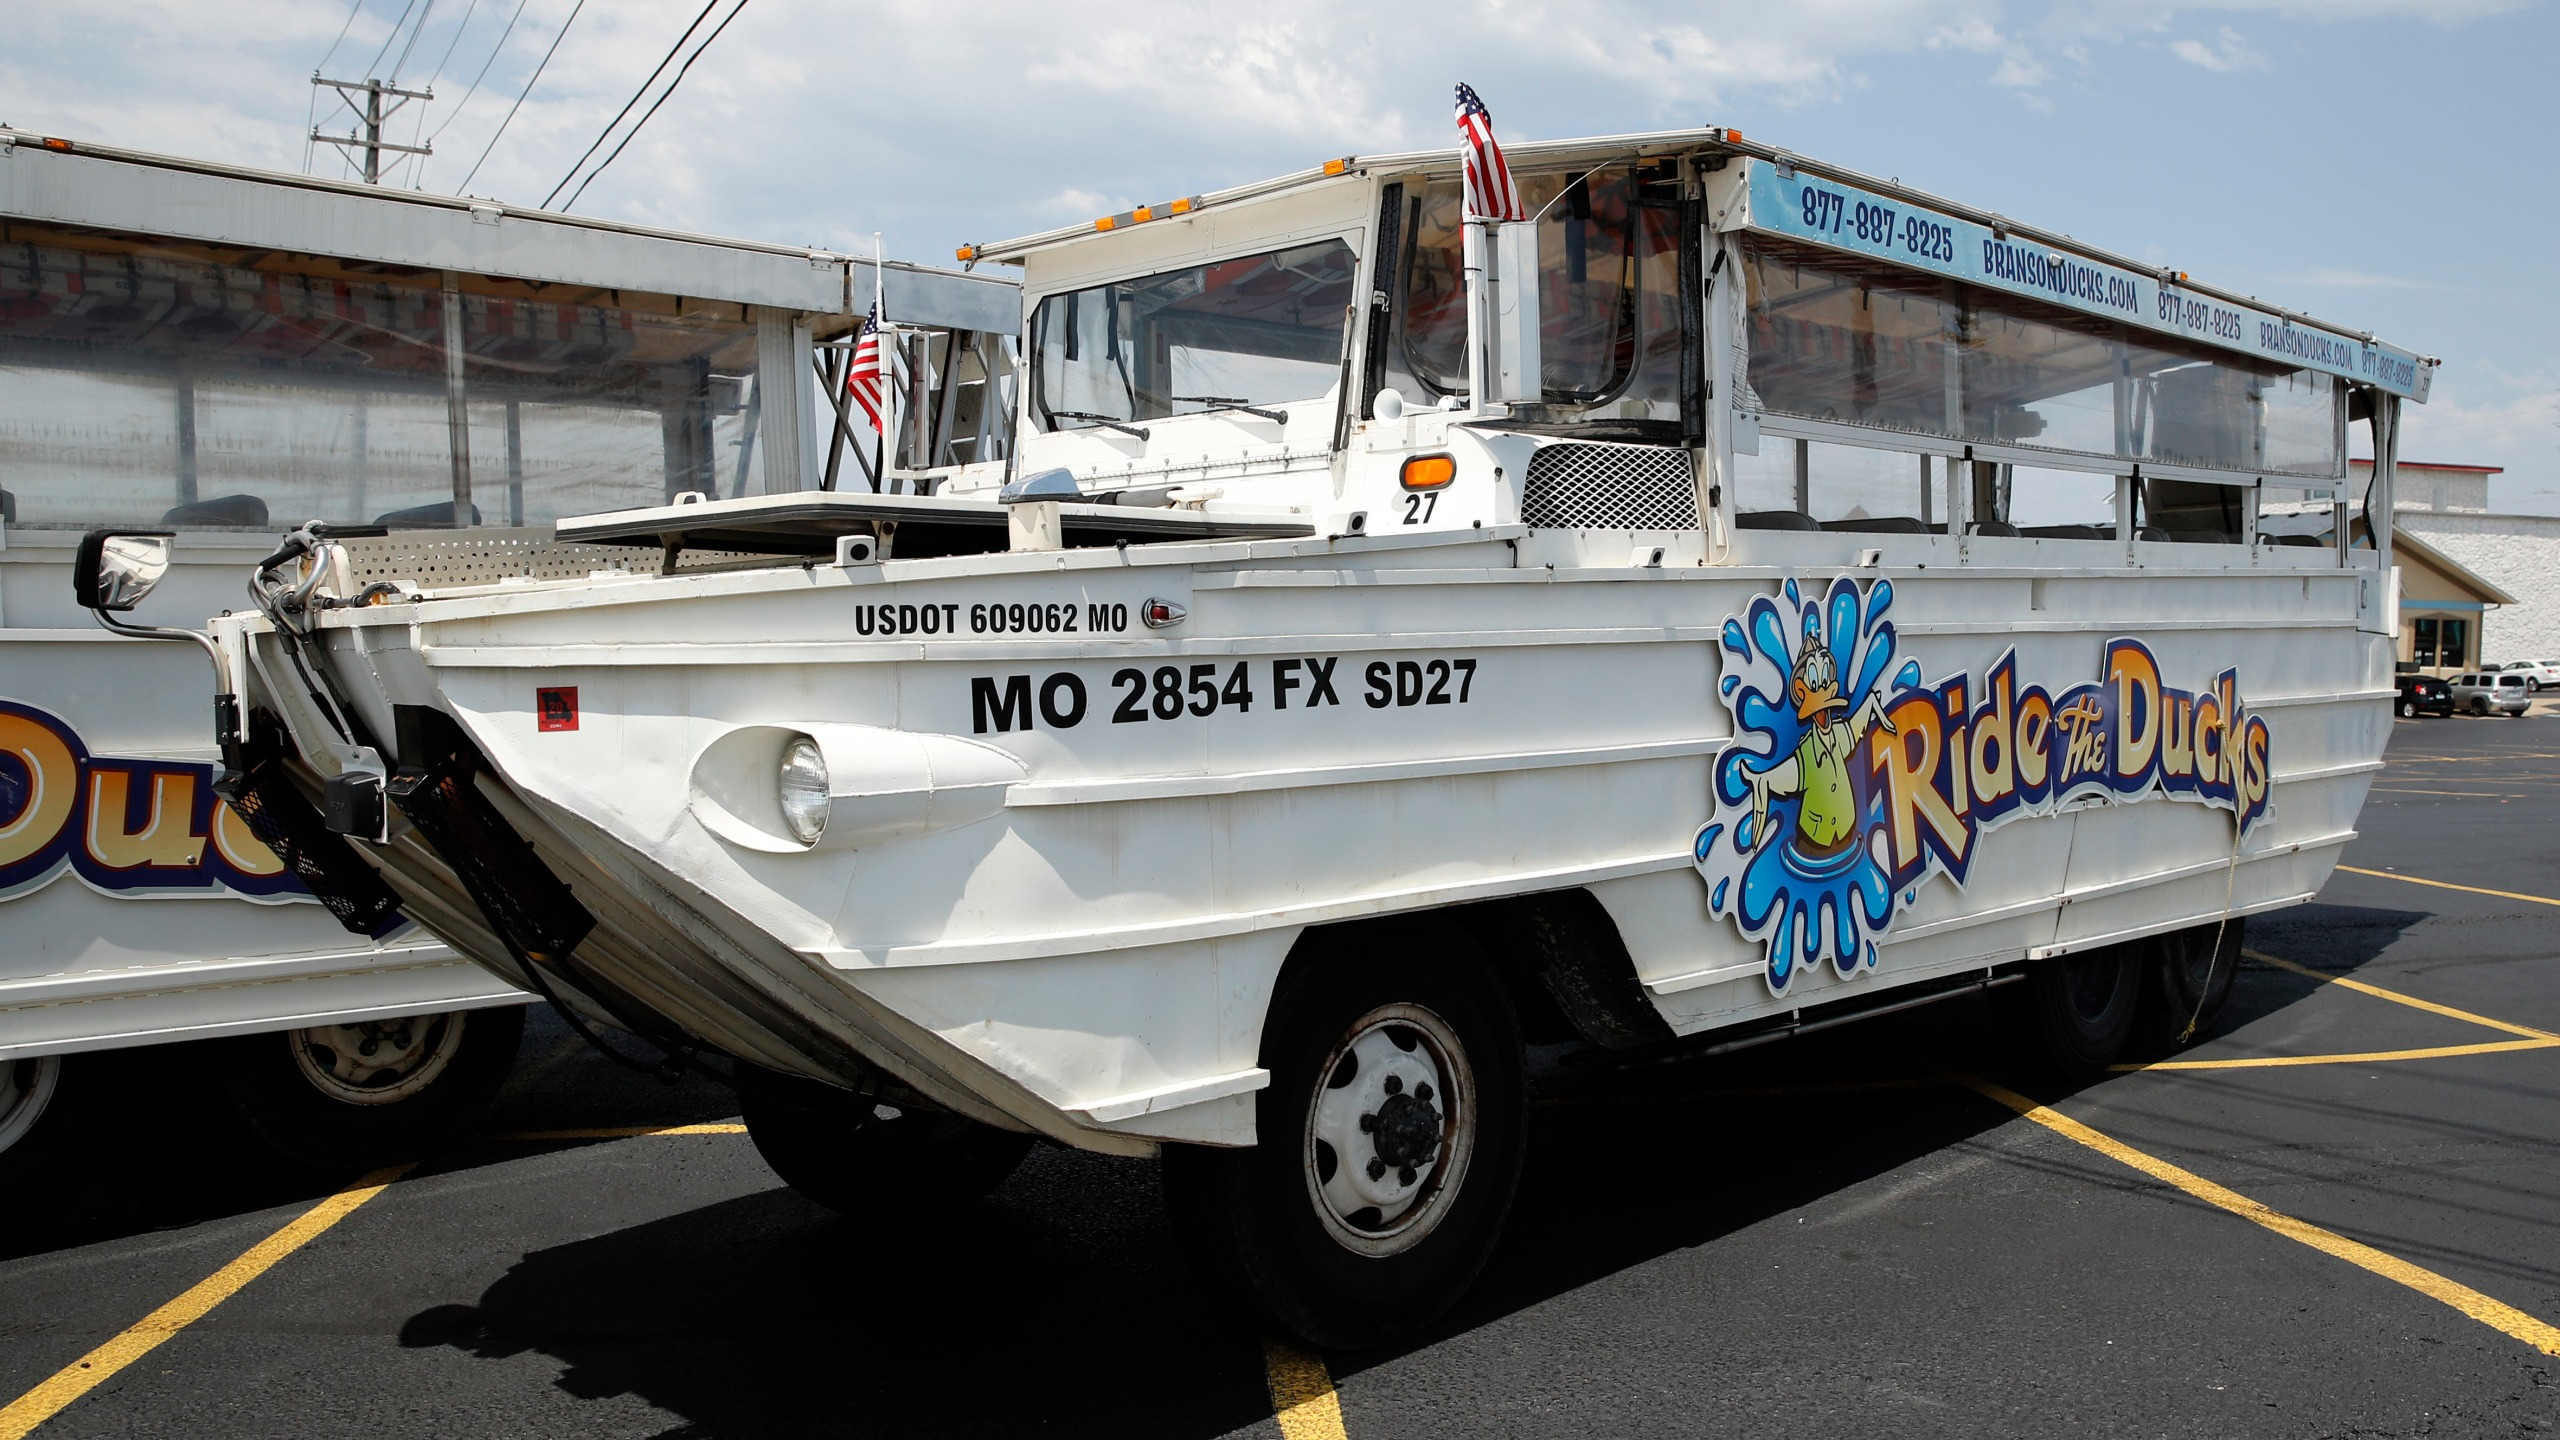 Missouri_Boat_Accident_Duck_Boats_43143-159532.jpg59359829